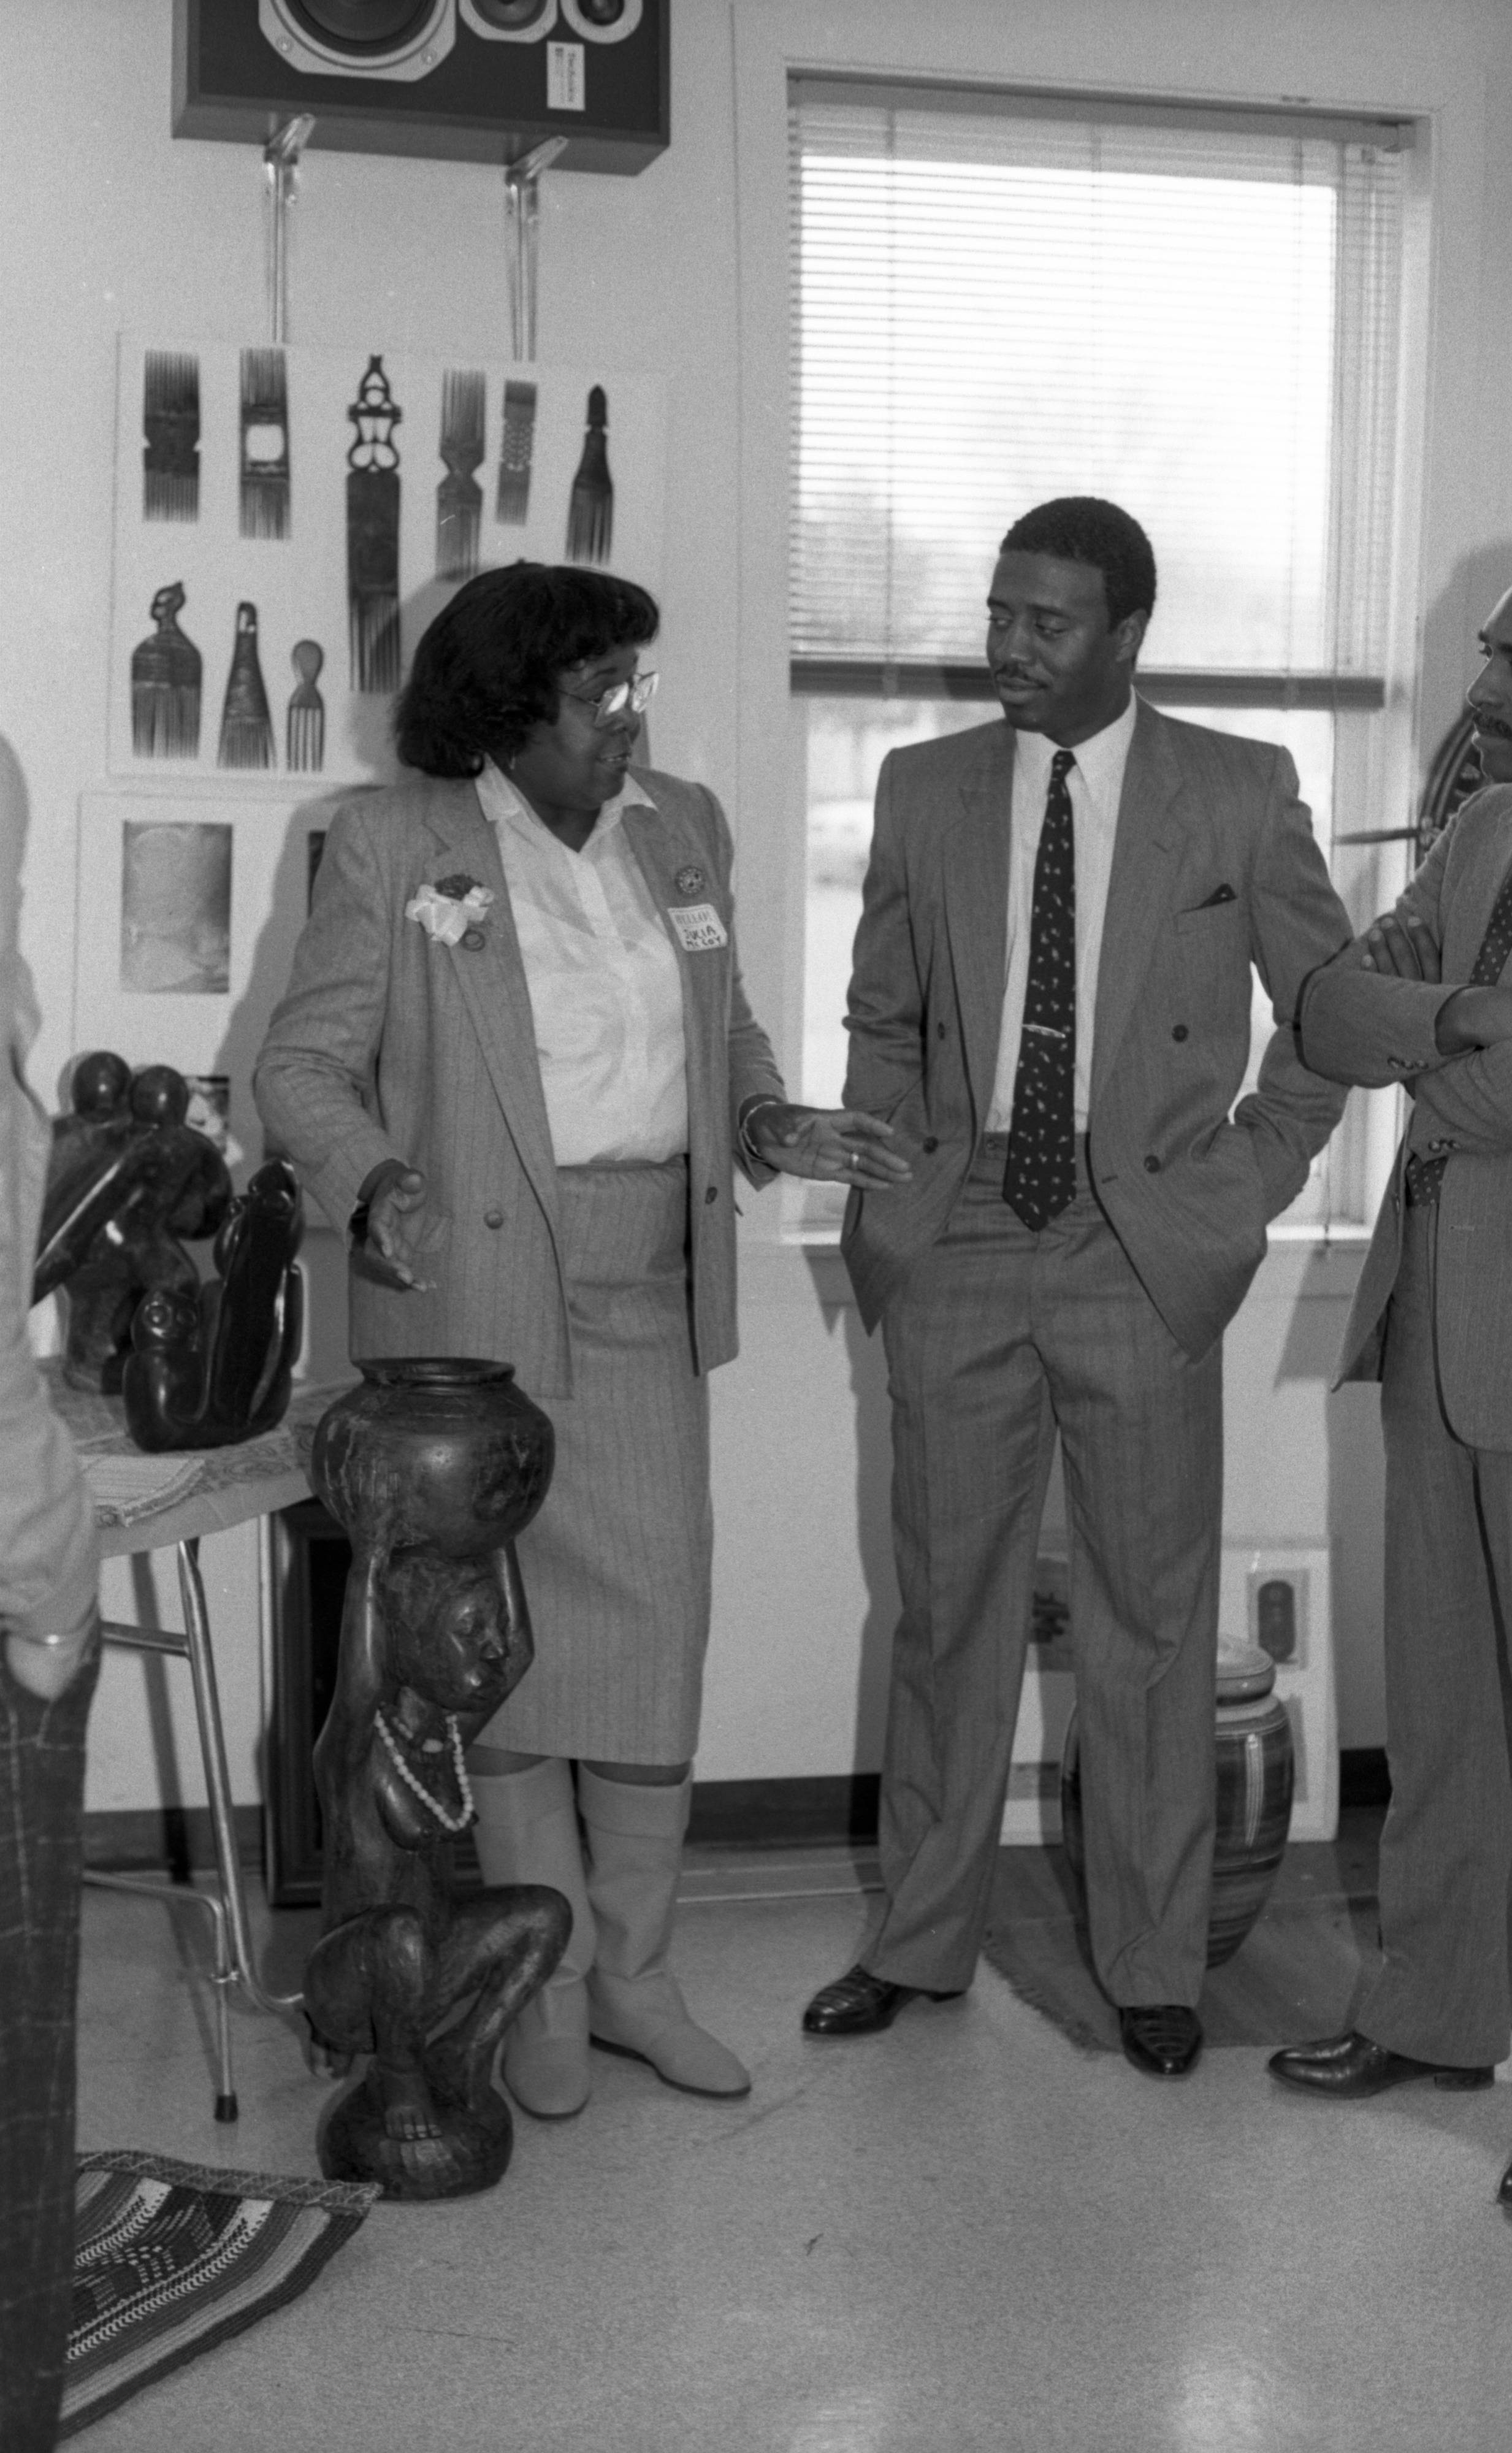 Discussing Display for Black History Fair at Parkridge Community Center, February 1988 image